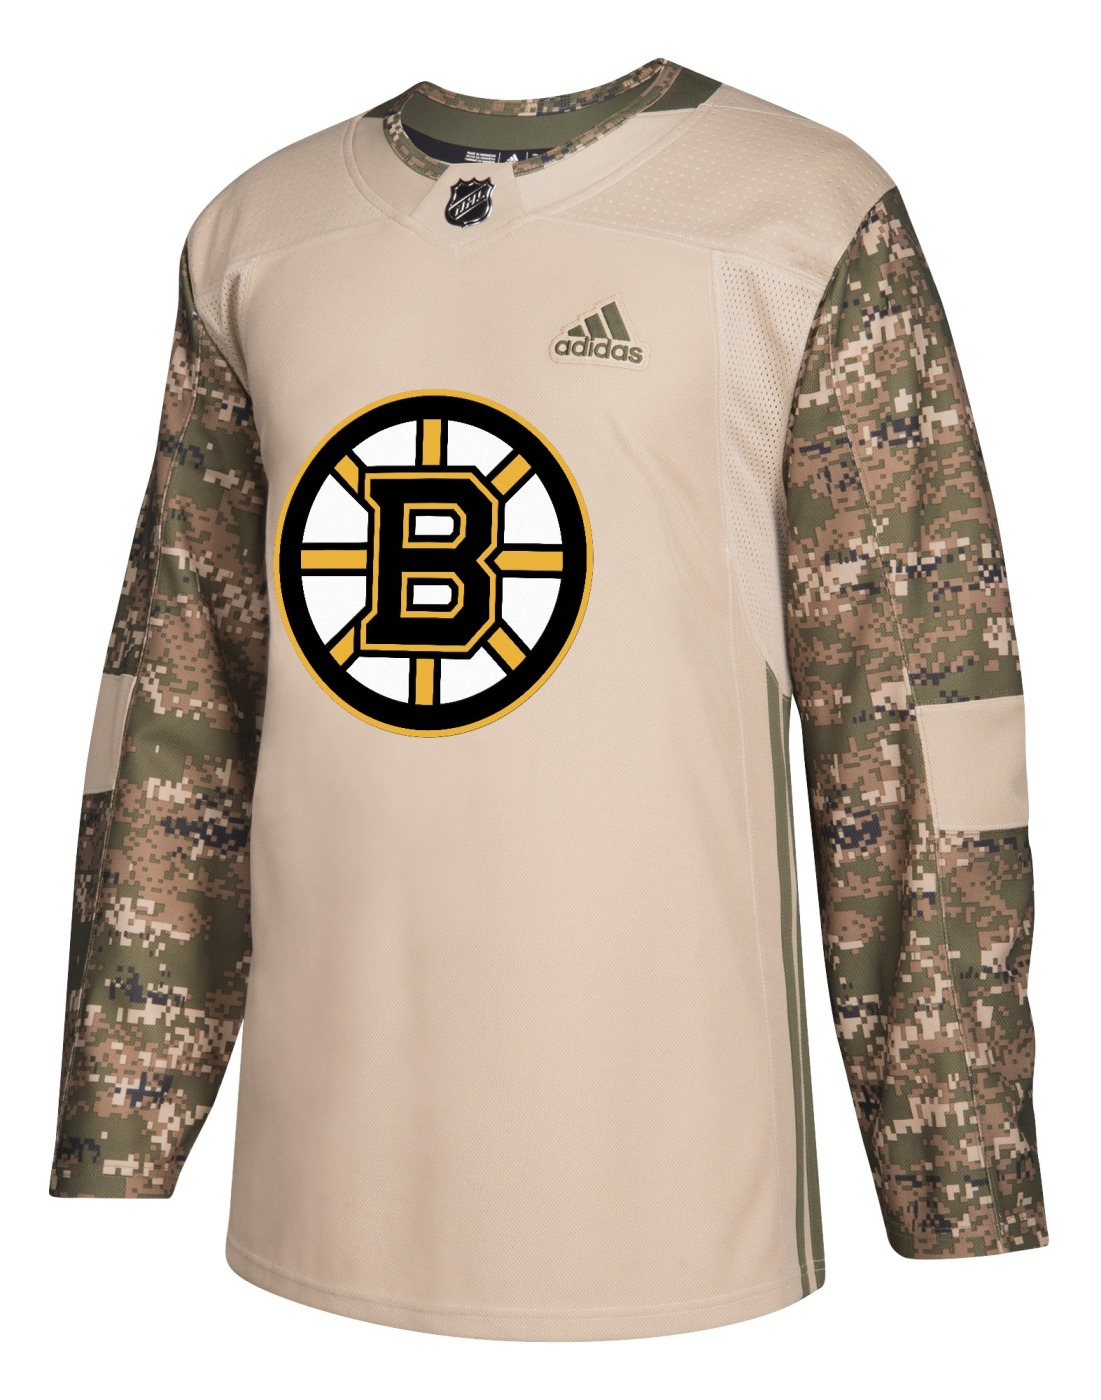 Boston Bruins Adidas NHL Camouflage Pre-Game Authentic Warm Up Jersey